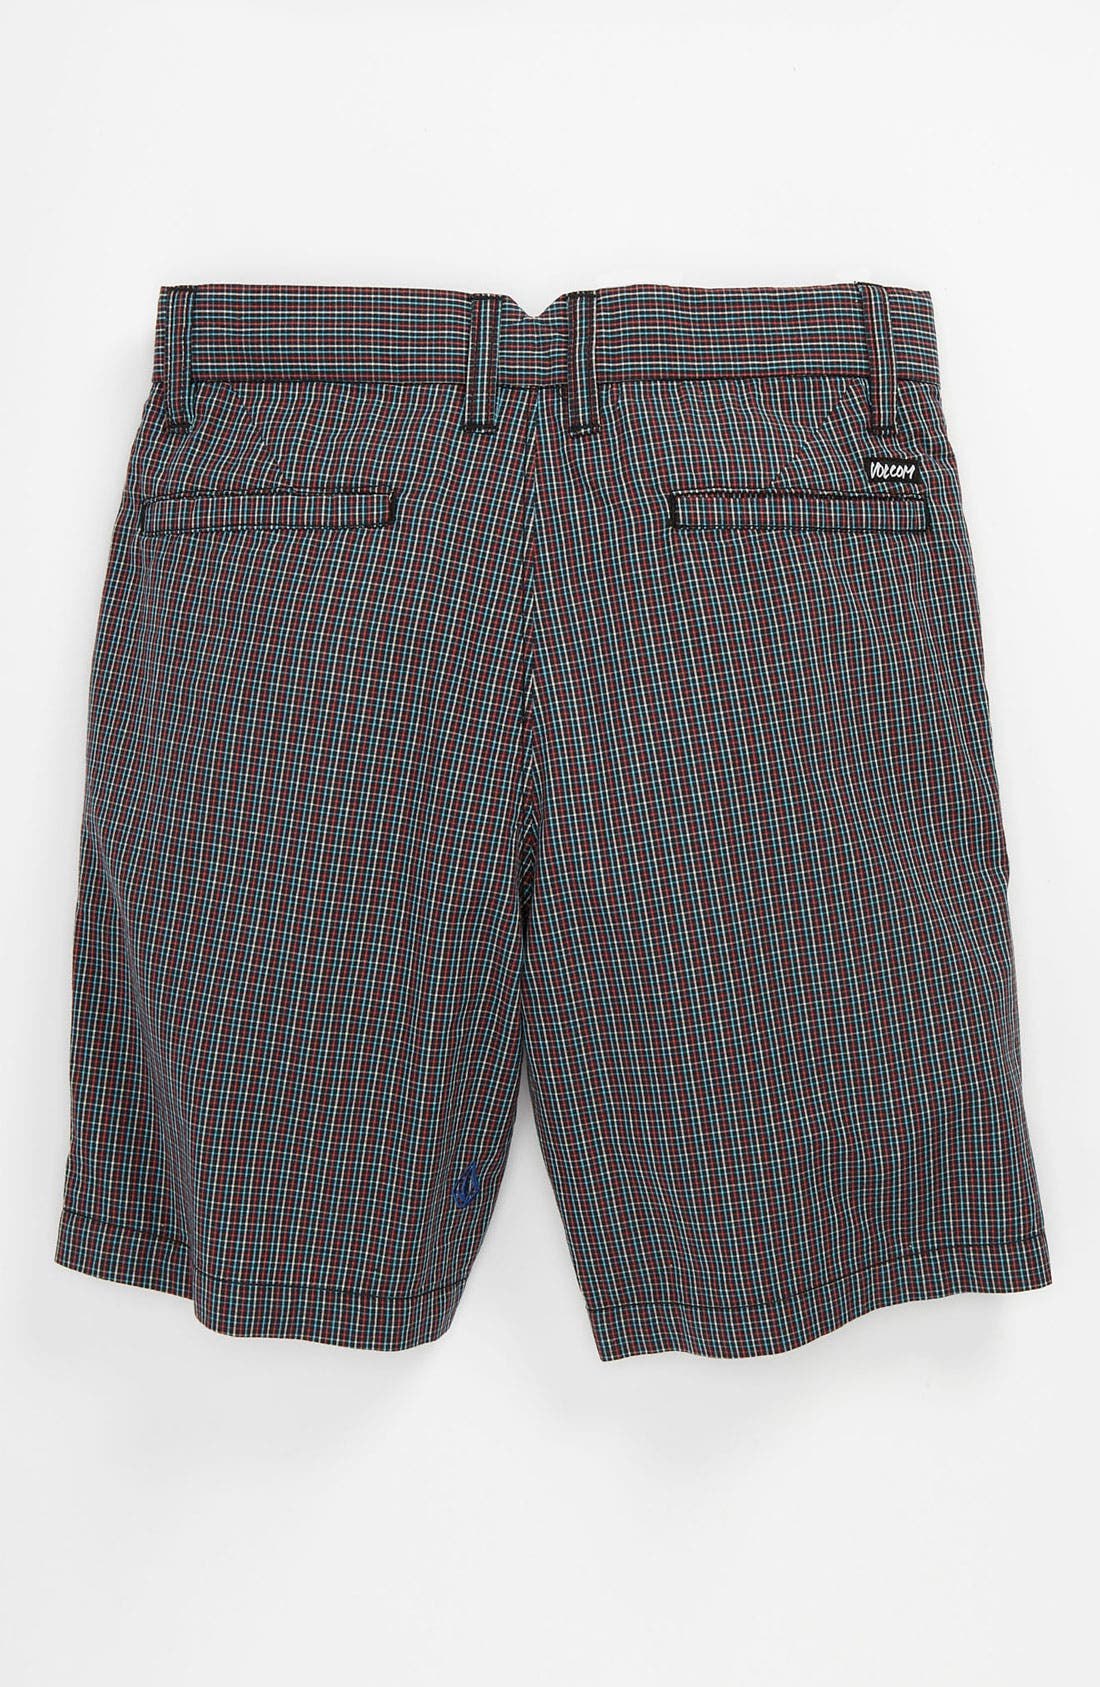 Alternate Image 2  - Volcom 'Rushy' Plaid Shorts (Big Boys)